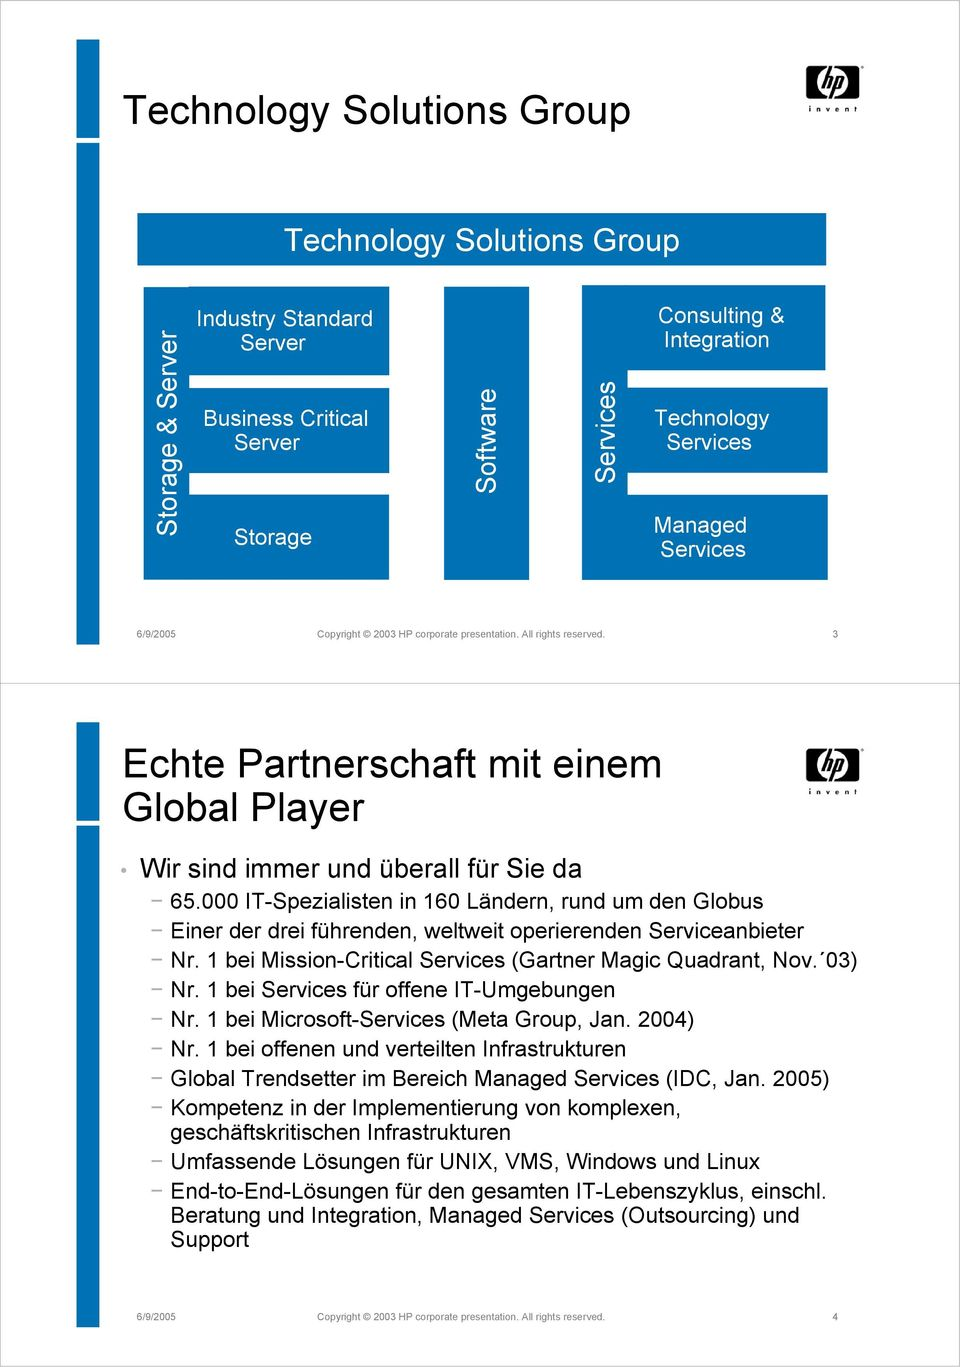 000 IT-Spezialisten in 160 Ländern, rund um den Globus Einer der drei führenden, weltweit operierenden Serviceanbieter Nr. 1 bei Mission-Critical Services (Gartner Magic Quadrant, Nov. 03) Nr.